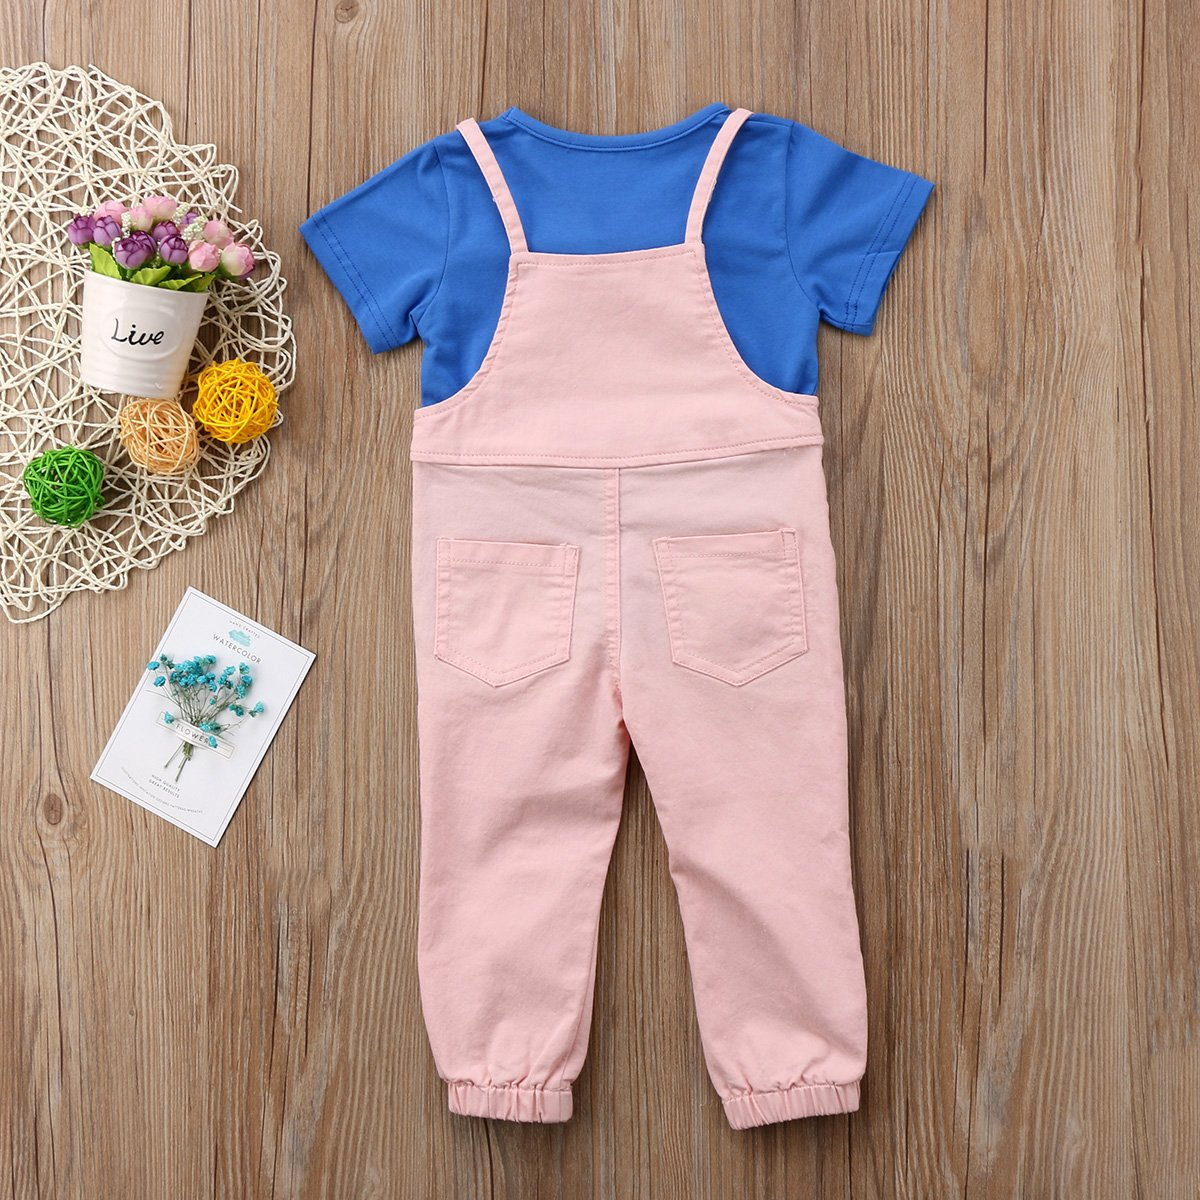 Annvivi Baby Girls Short Sleeve T-Shirt Suspenders Pant Overalls 2pcs Outfits Set